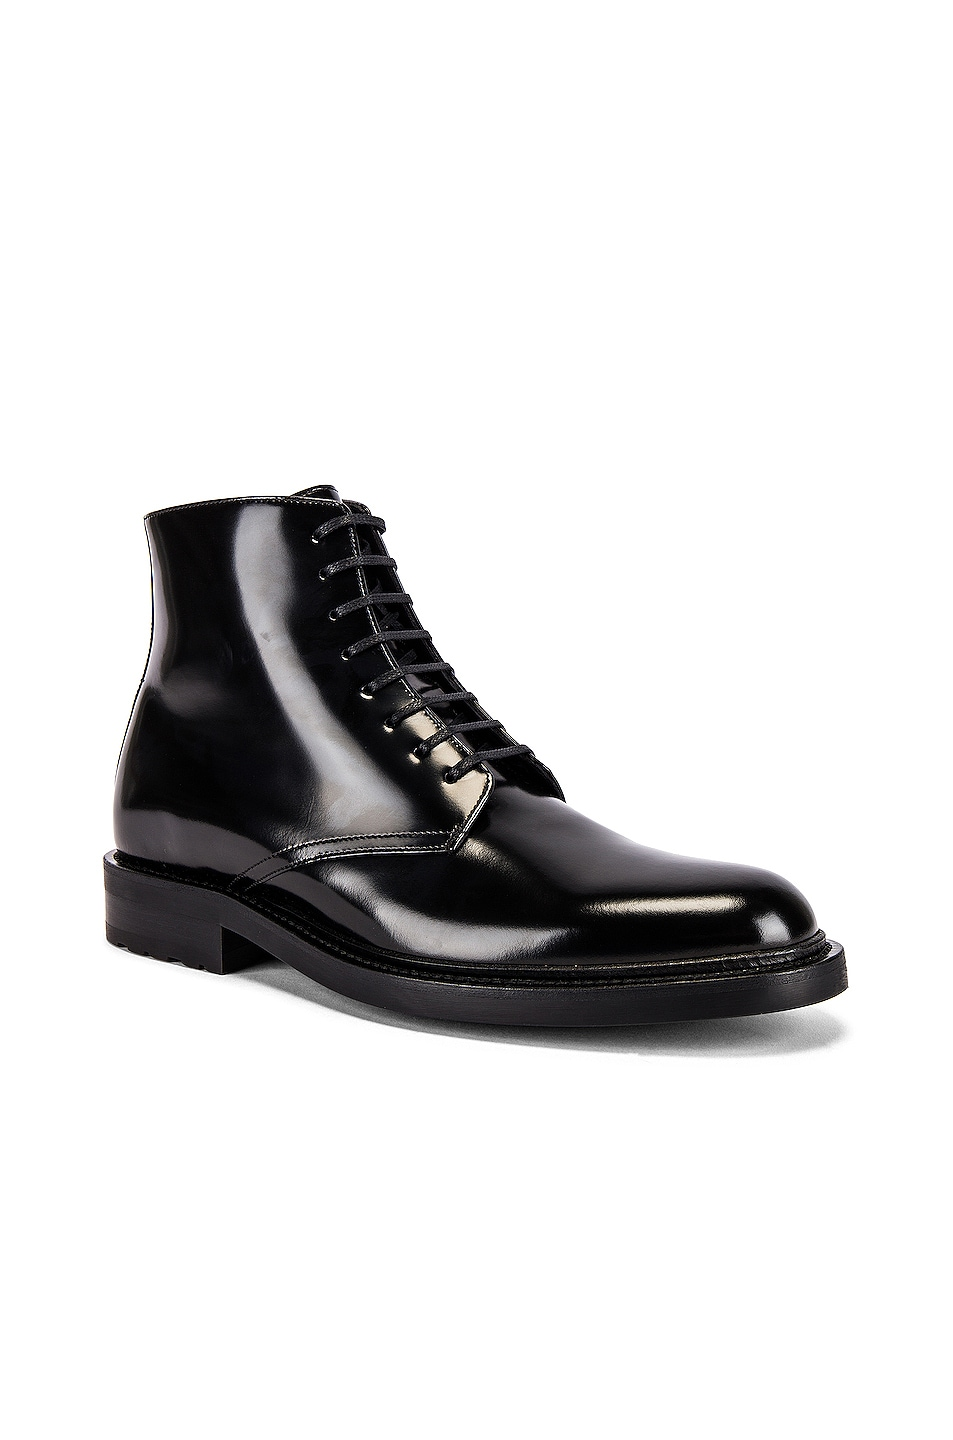 Image 1 of Saint Laurent Army Lace Up Boots in Black